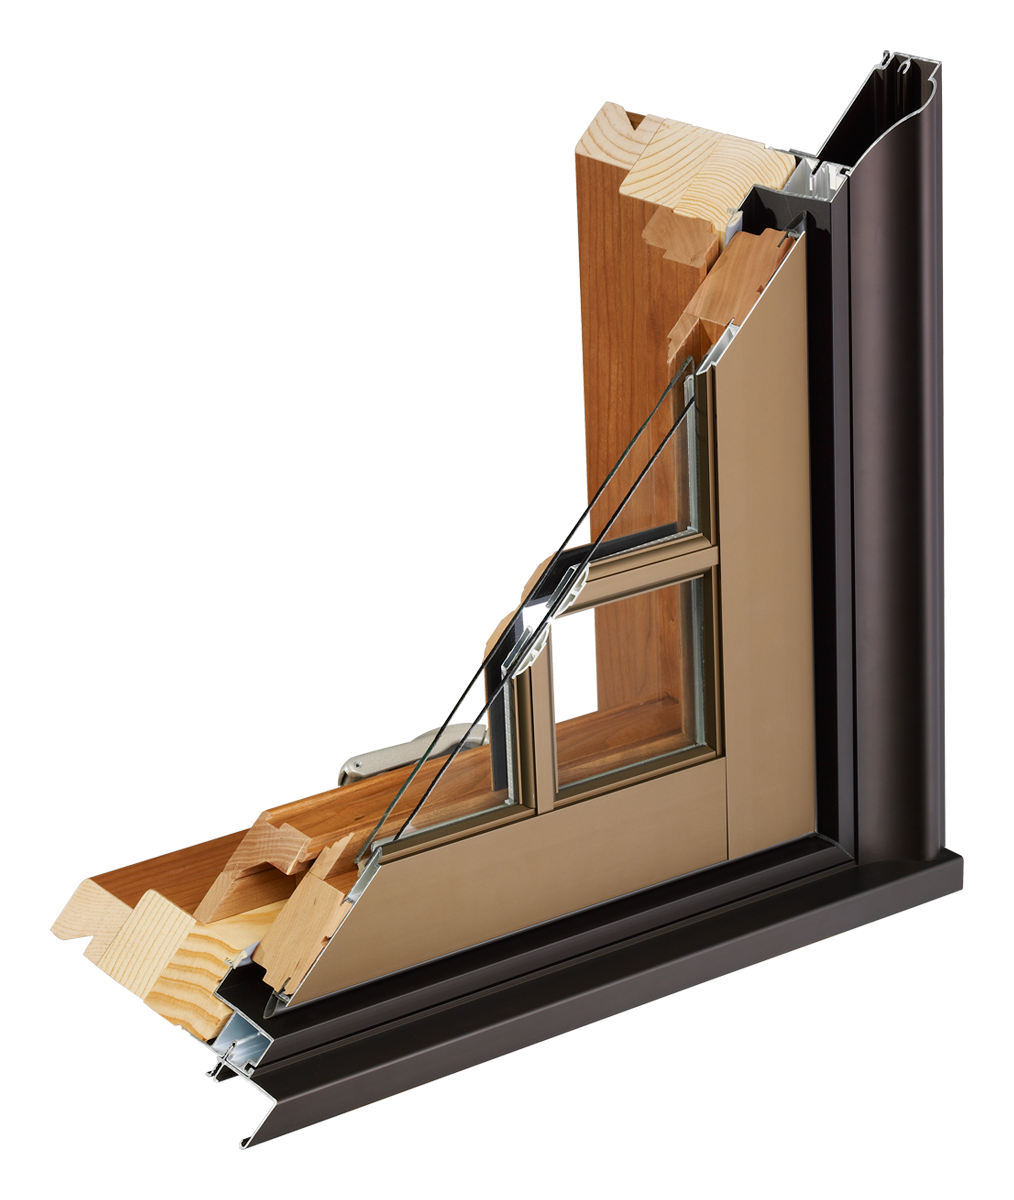 WOOD CLAD REPLACEMENT WINDOWS HOUSTON